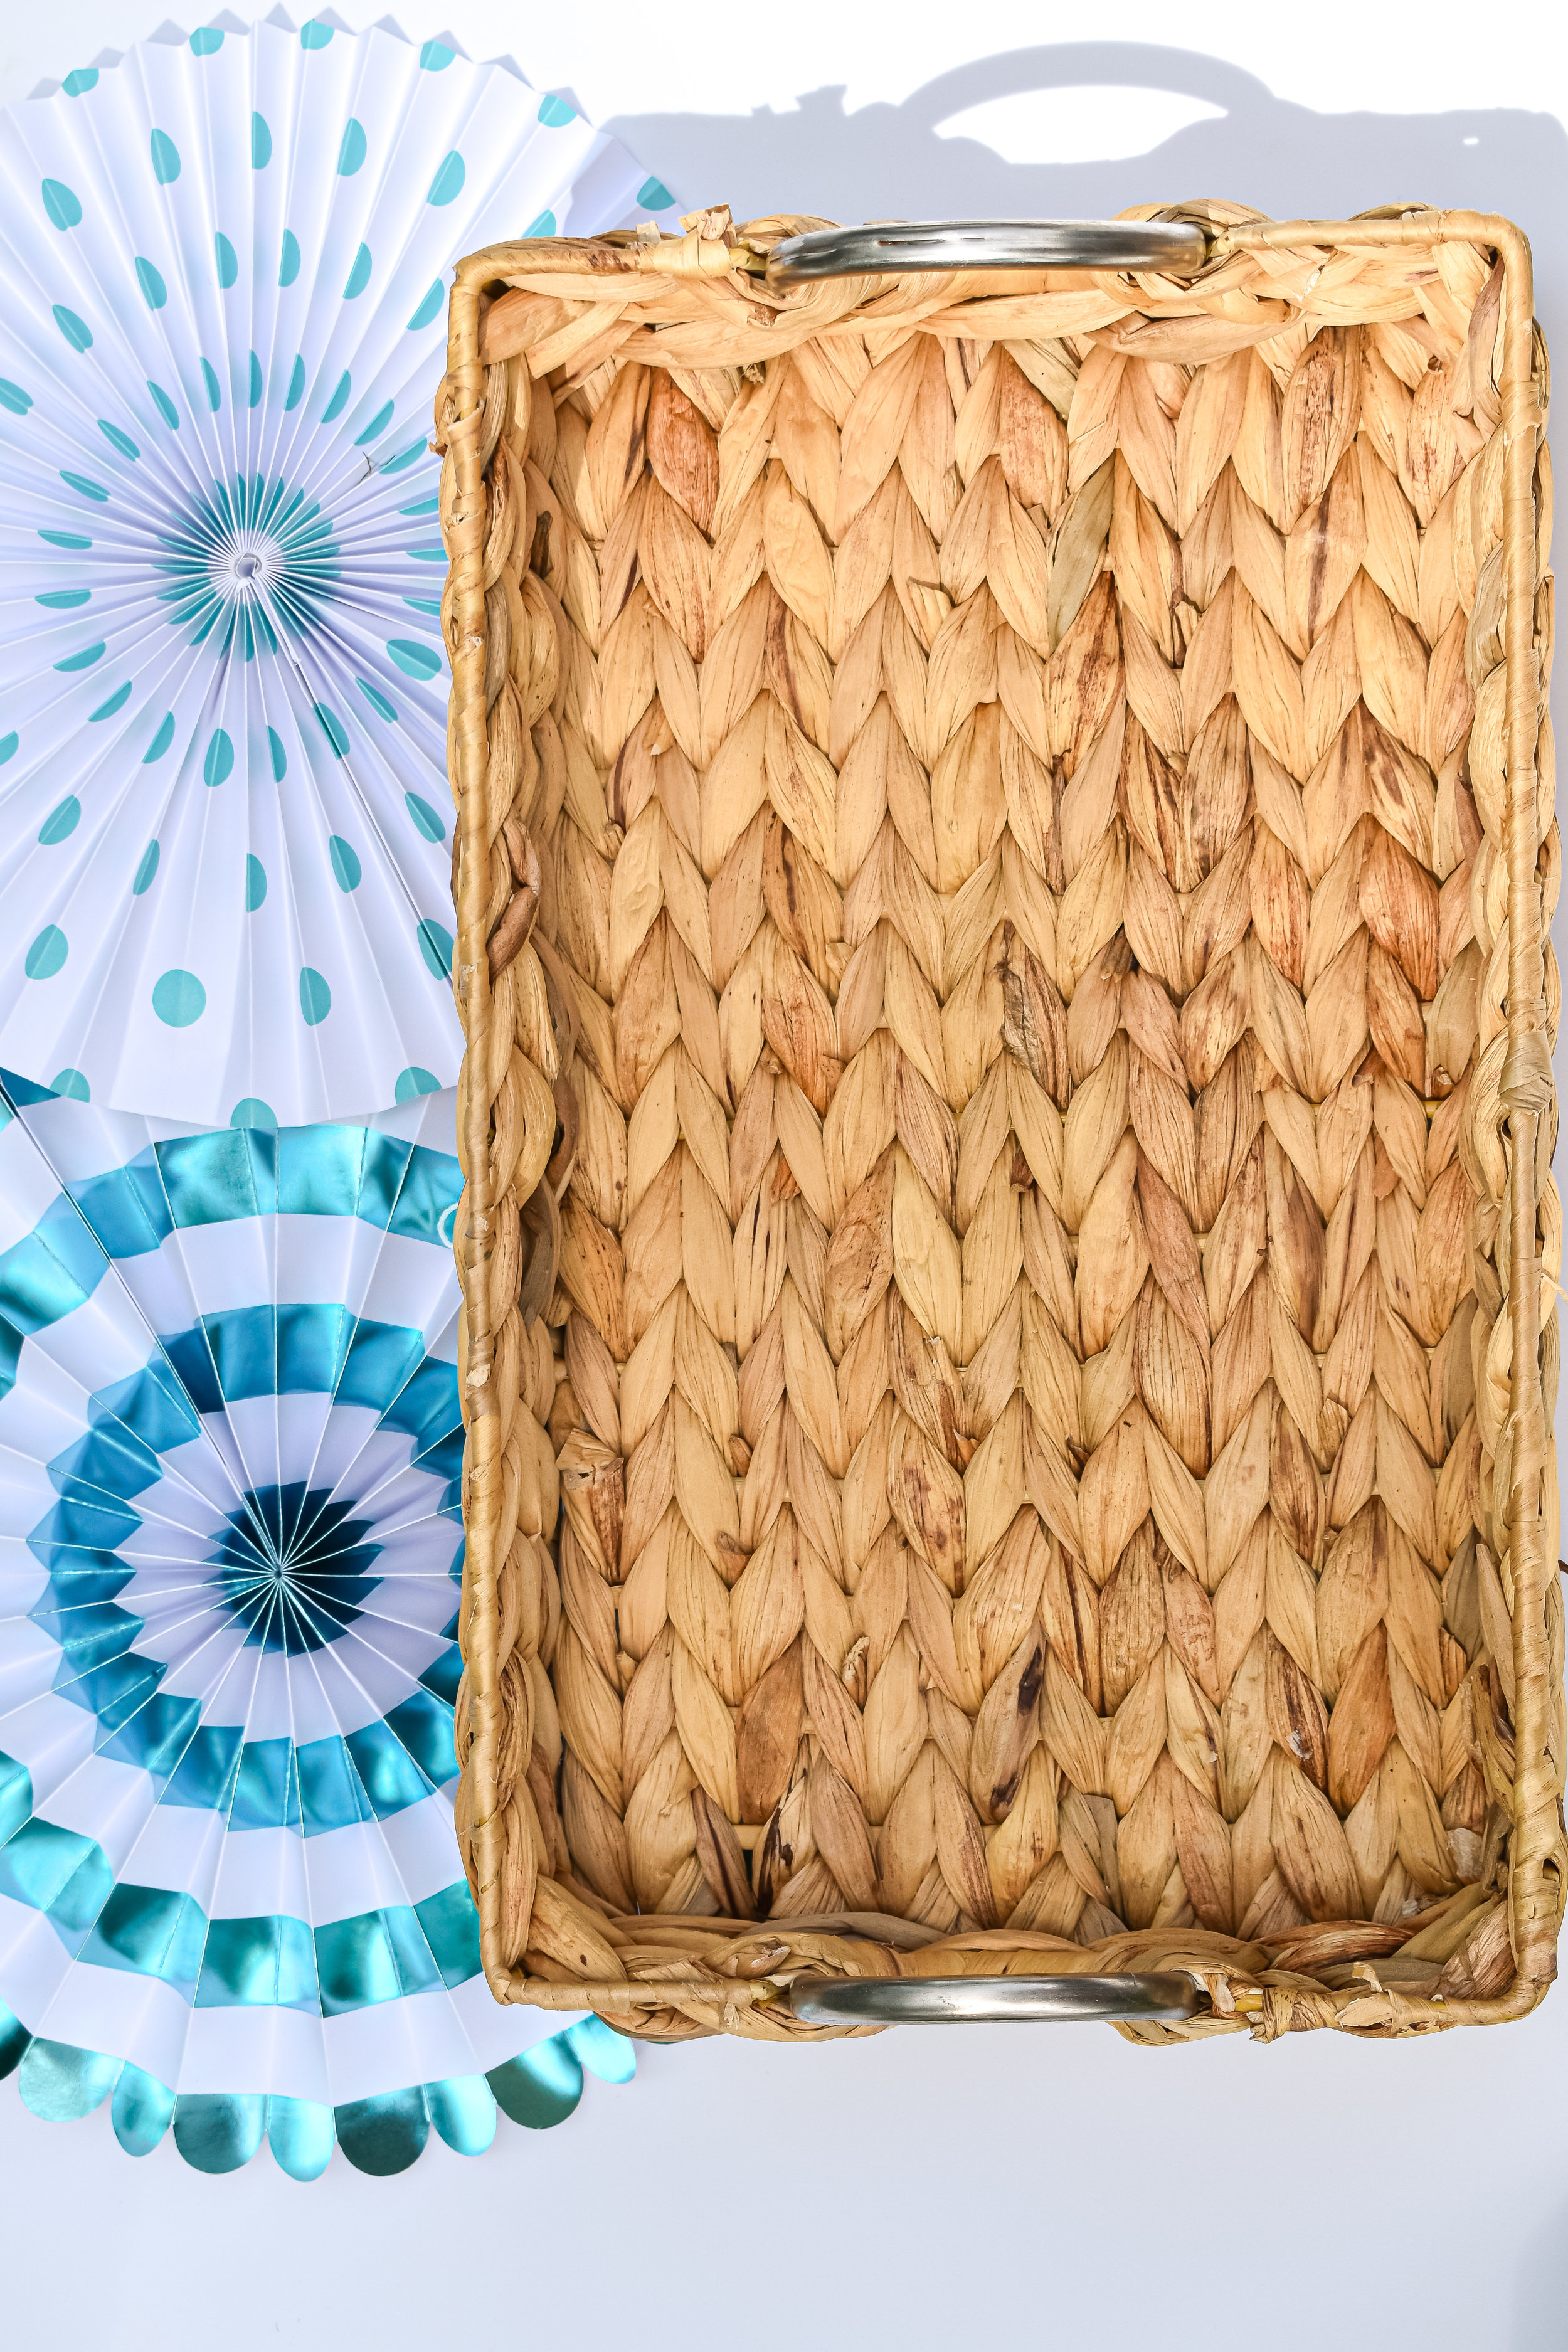 Woven Tray:  Home Goods  Party Fans (set of 3):  Walmart- Similar here